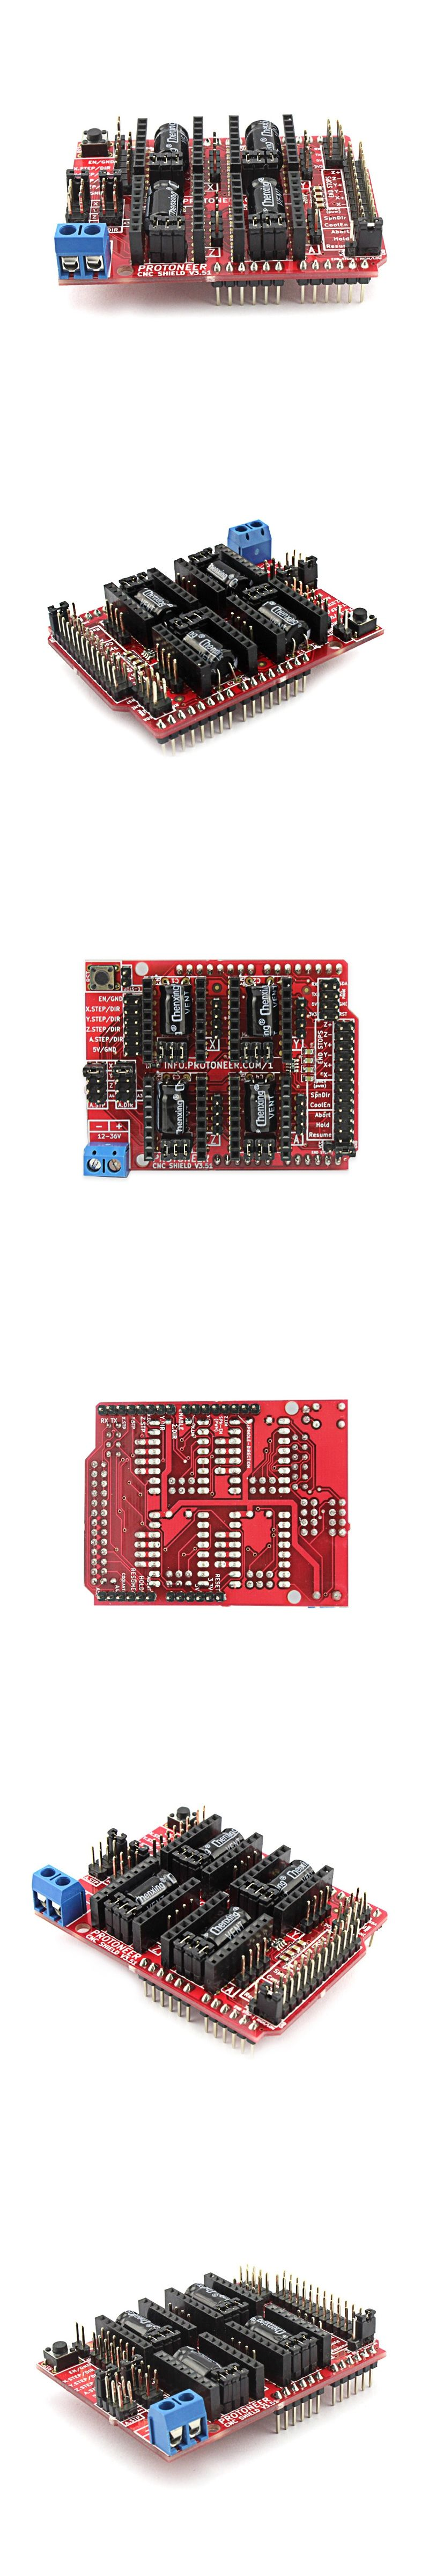 Elecrow New Development Board Cnc Shield V351 For Arduino 3d Aliexpresscom Buy 37v Pcb Circuit Battery Protection Printer Micro Controllers Grbl